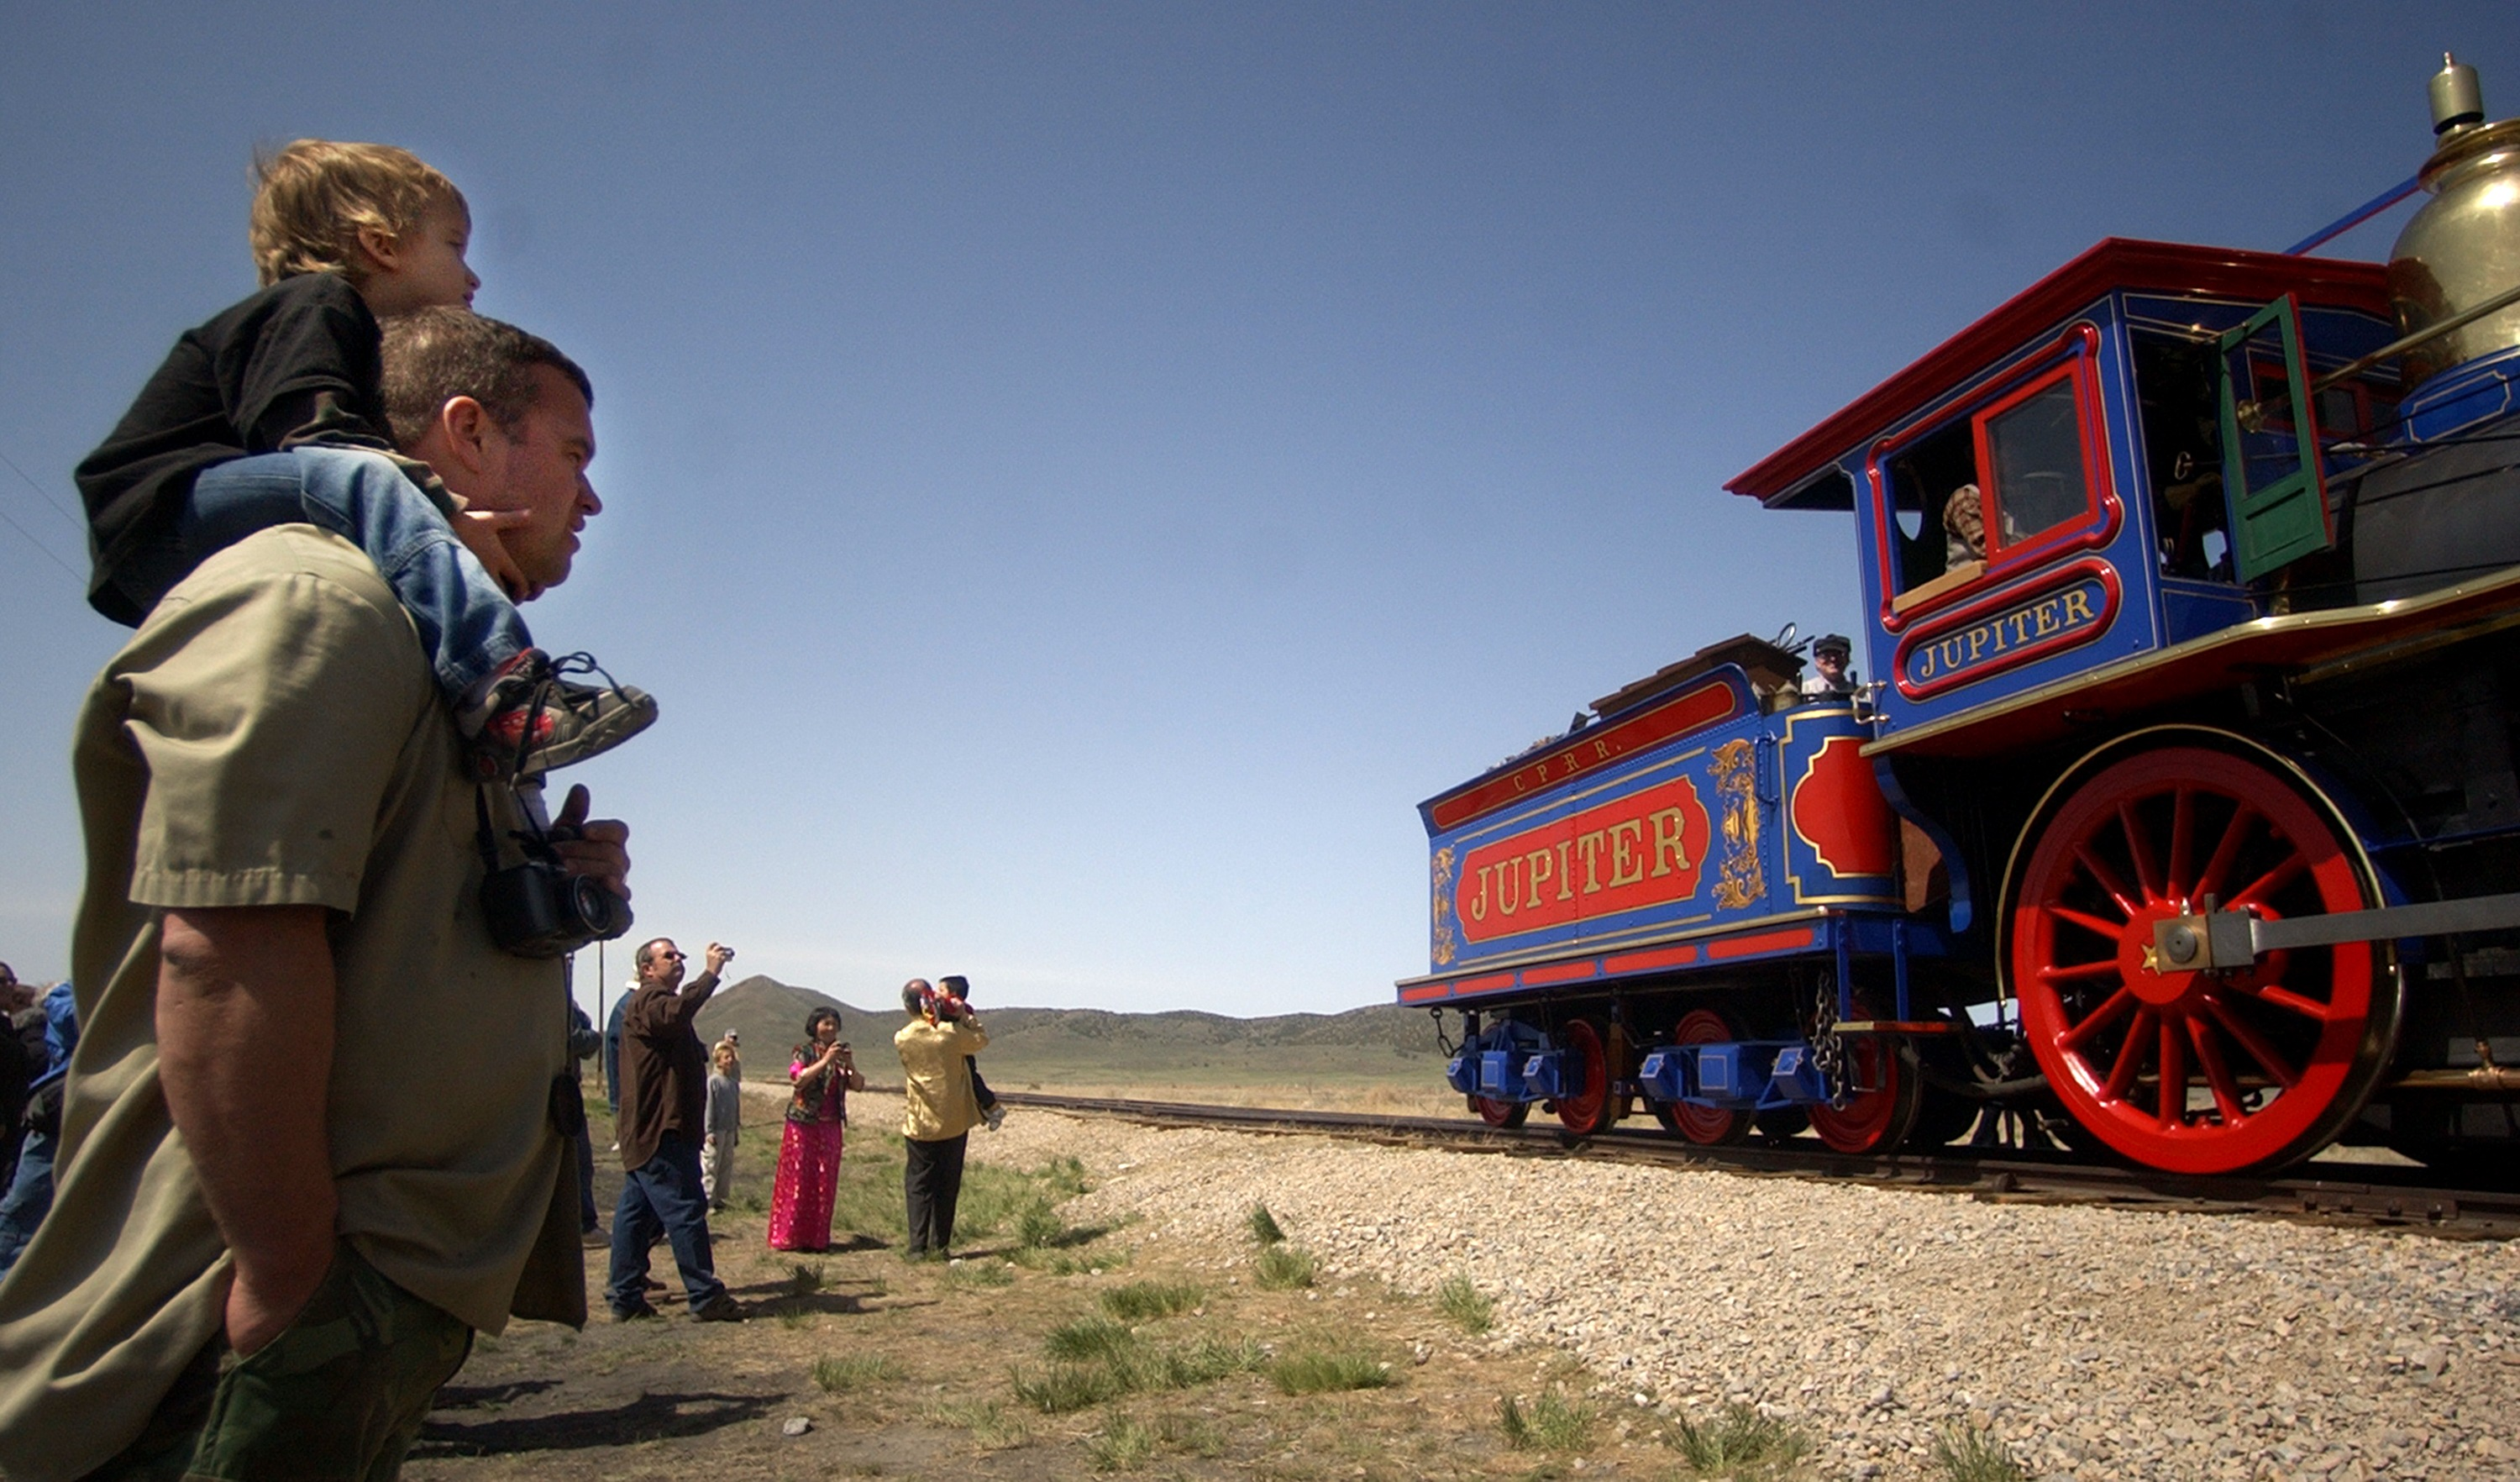 Stuart Taylor and his son Jacob join other spectators at the 139th annual golden spike celebration in Promontory Summit, Utah, on Saturday, May 10, 2008, as the wood-fired Jupiter engine rolls toward the point of where the driving of the last spike is reenacted each year.